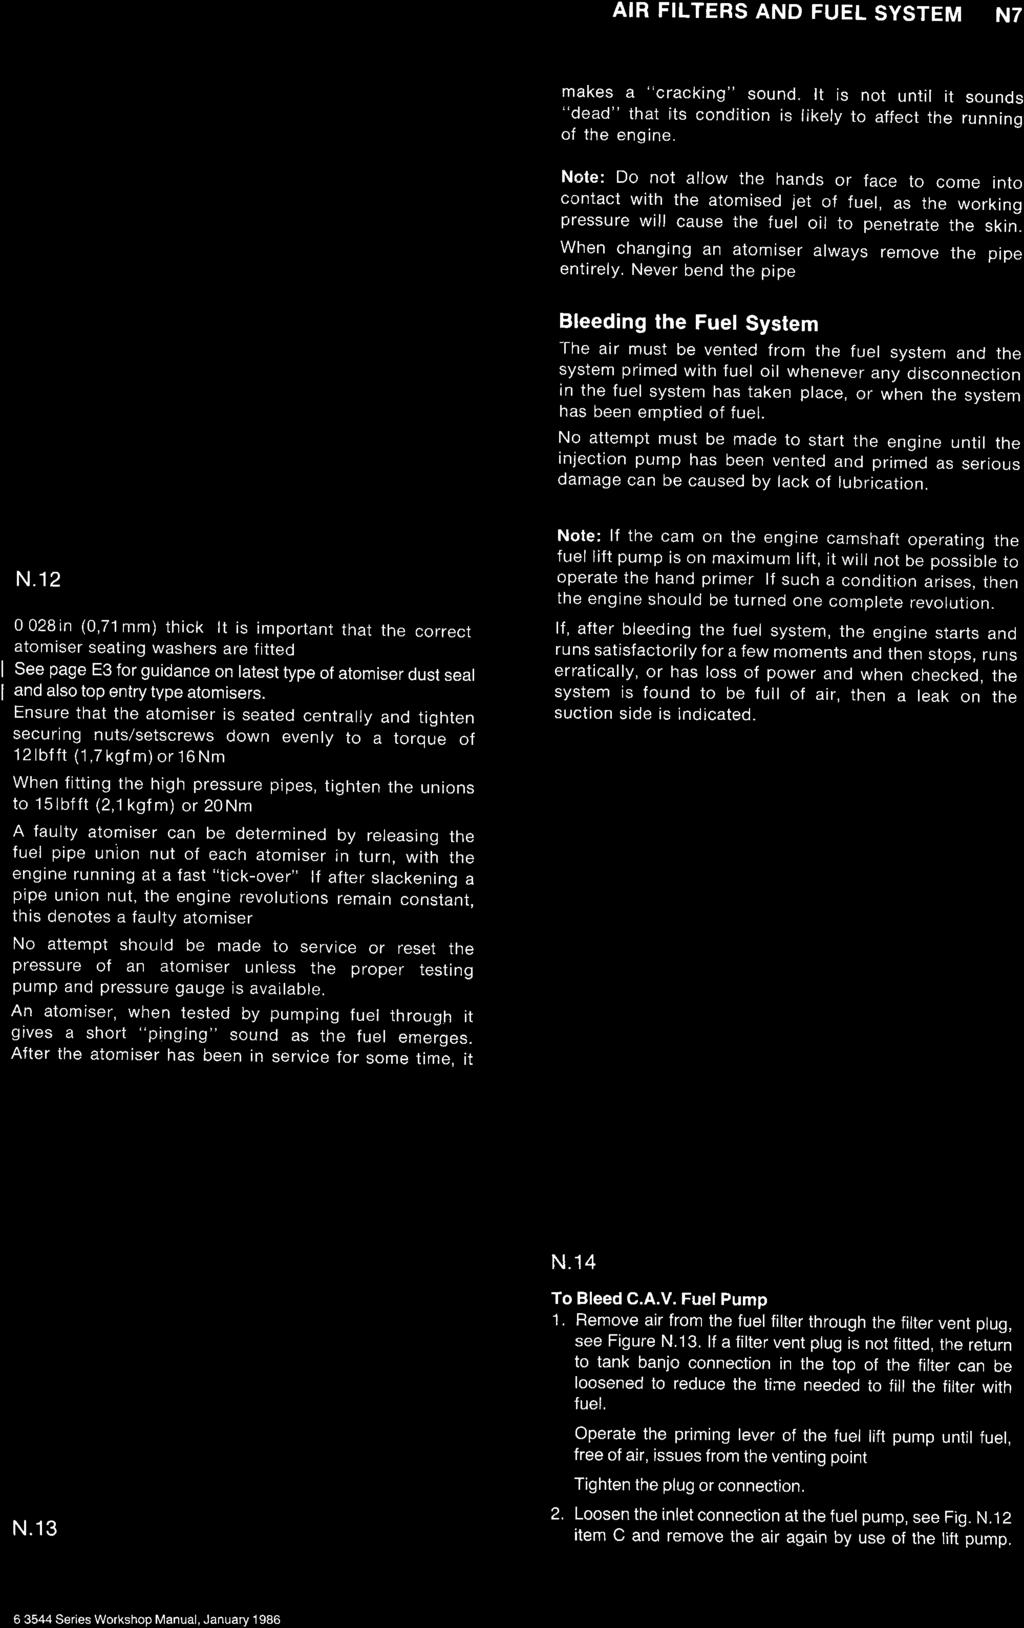 workshop manual for diesel engines t6 3544 and perkins engines